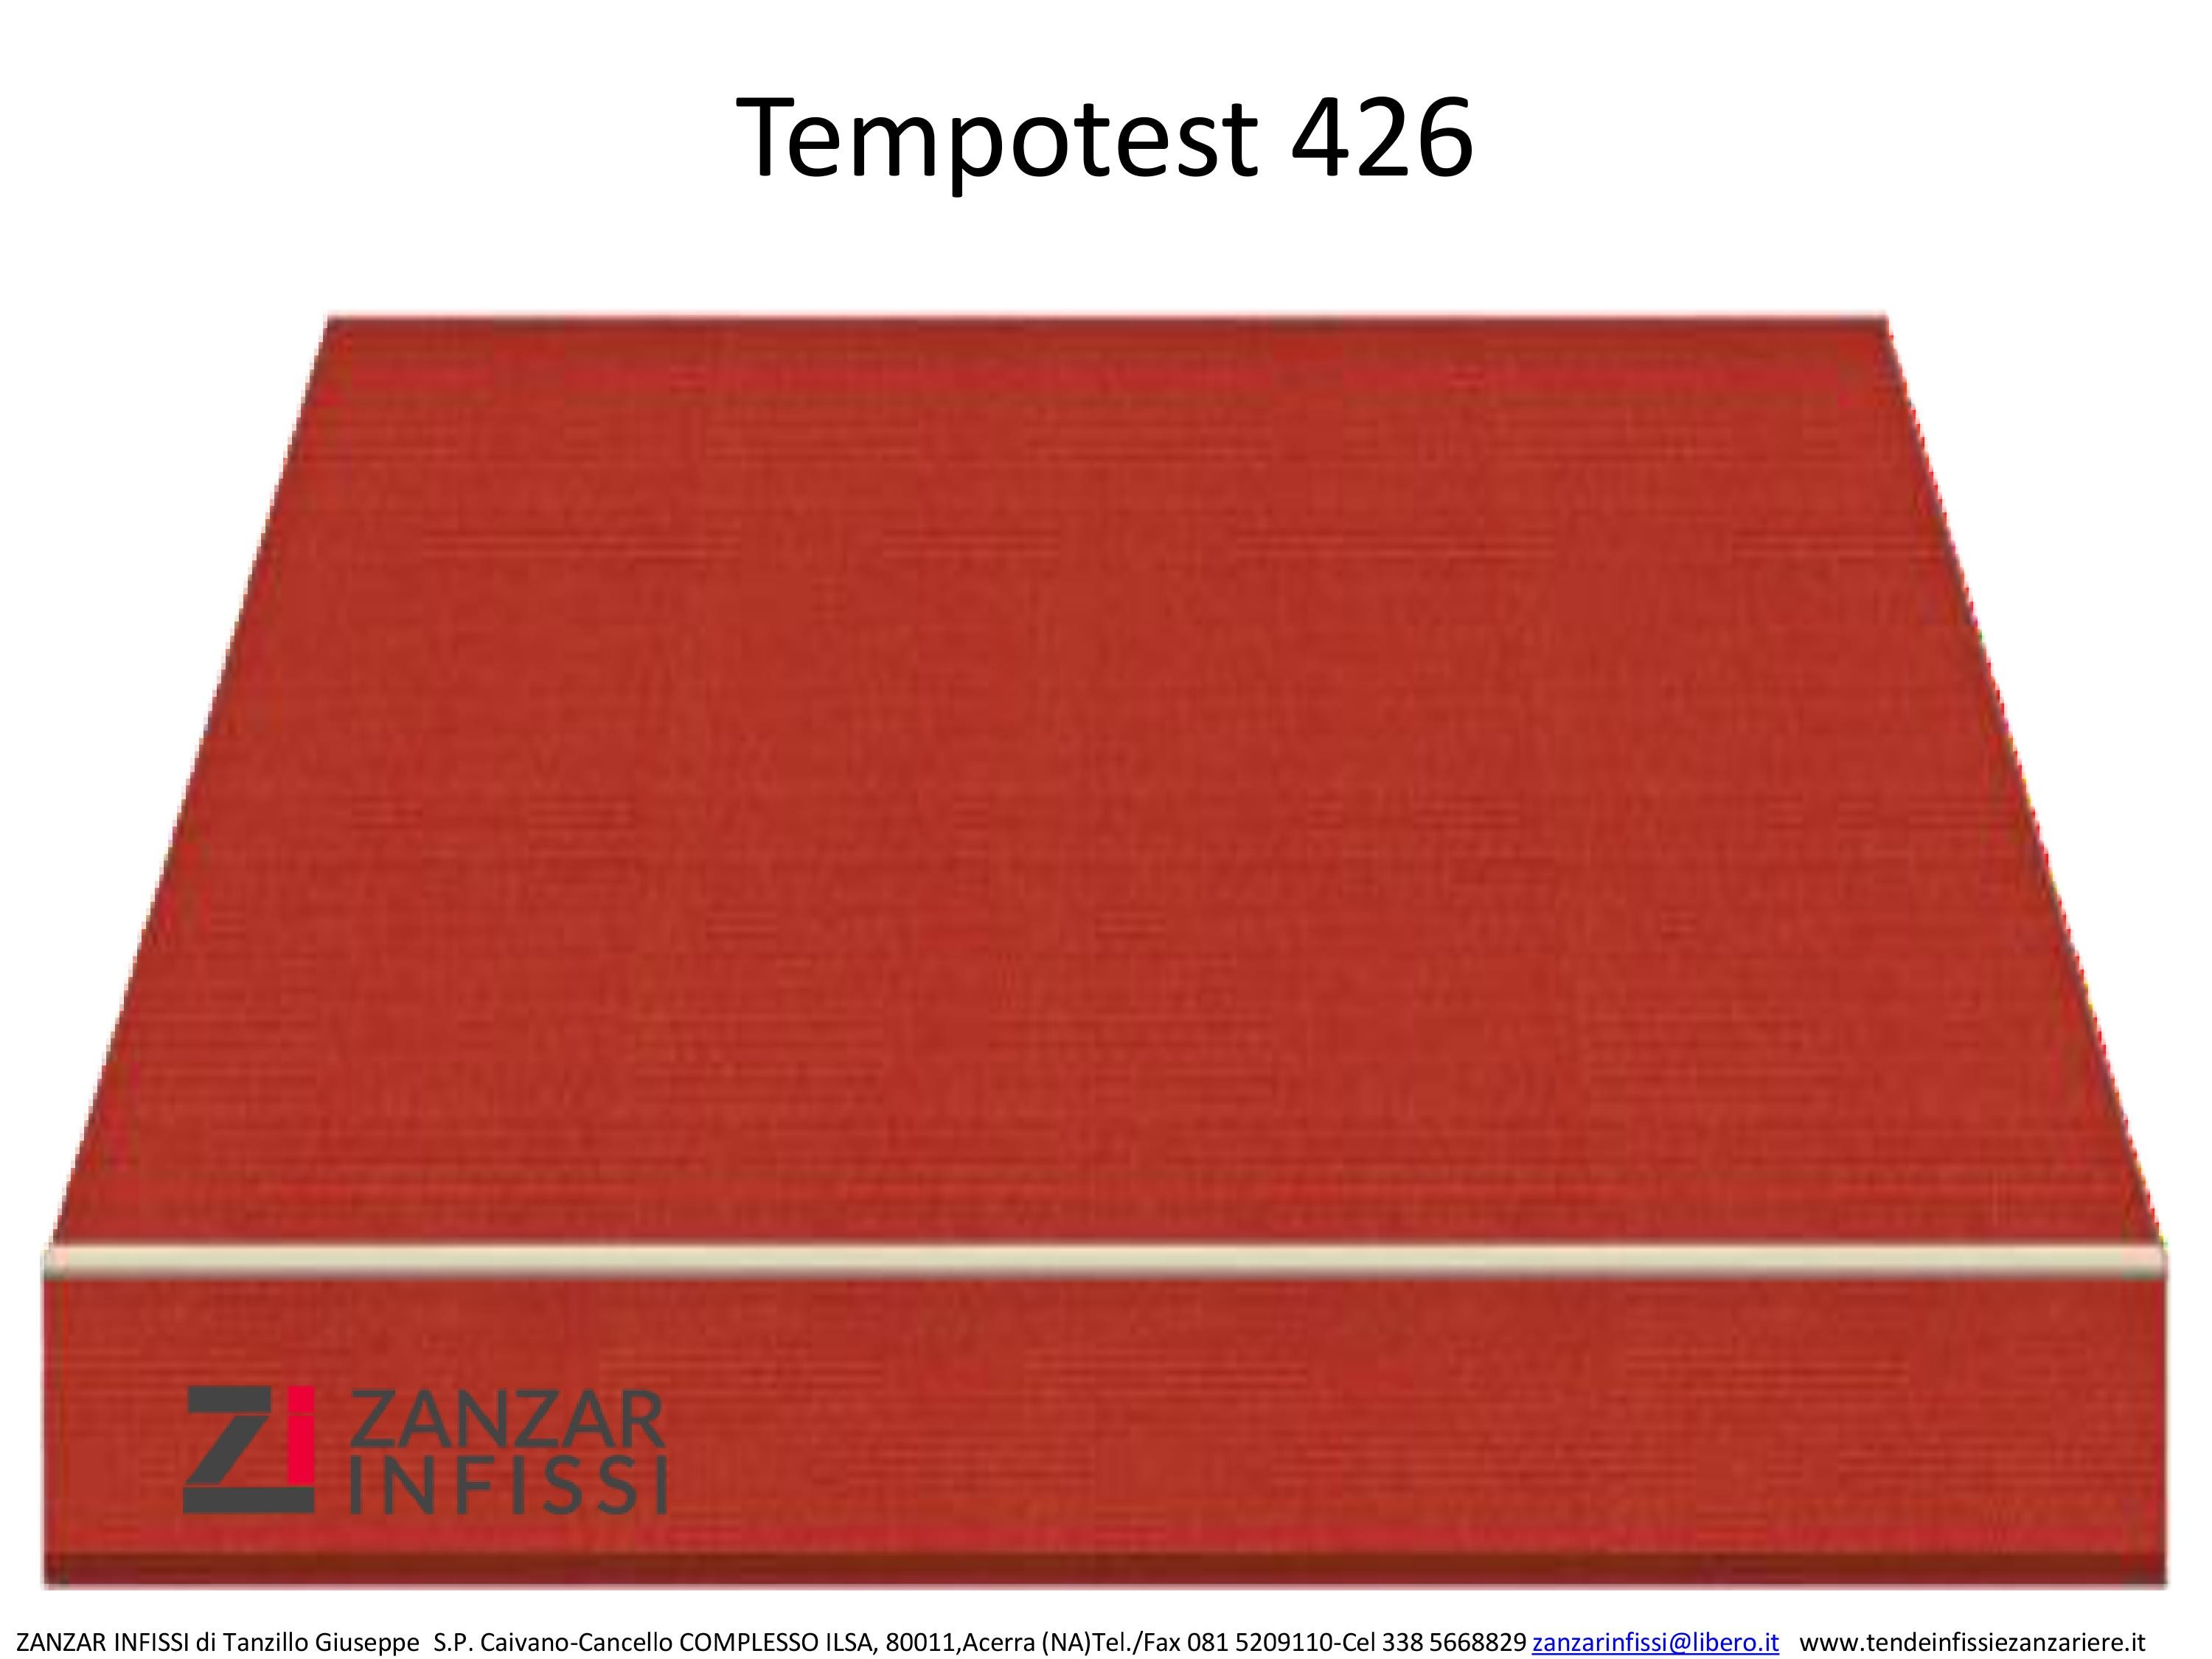 Tempotest 426